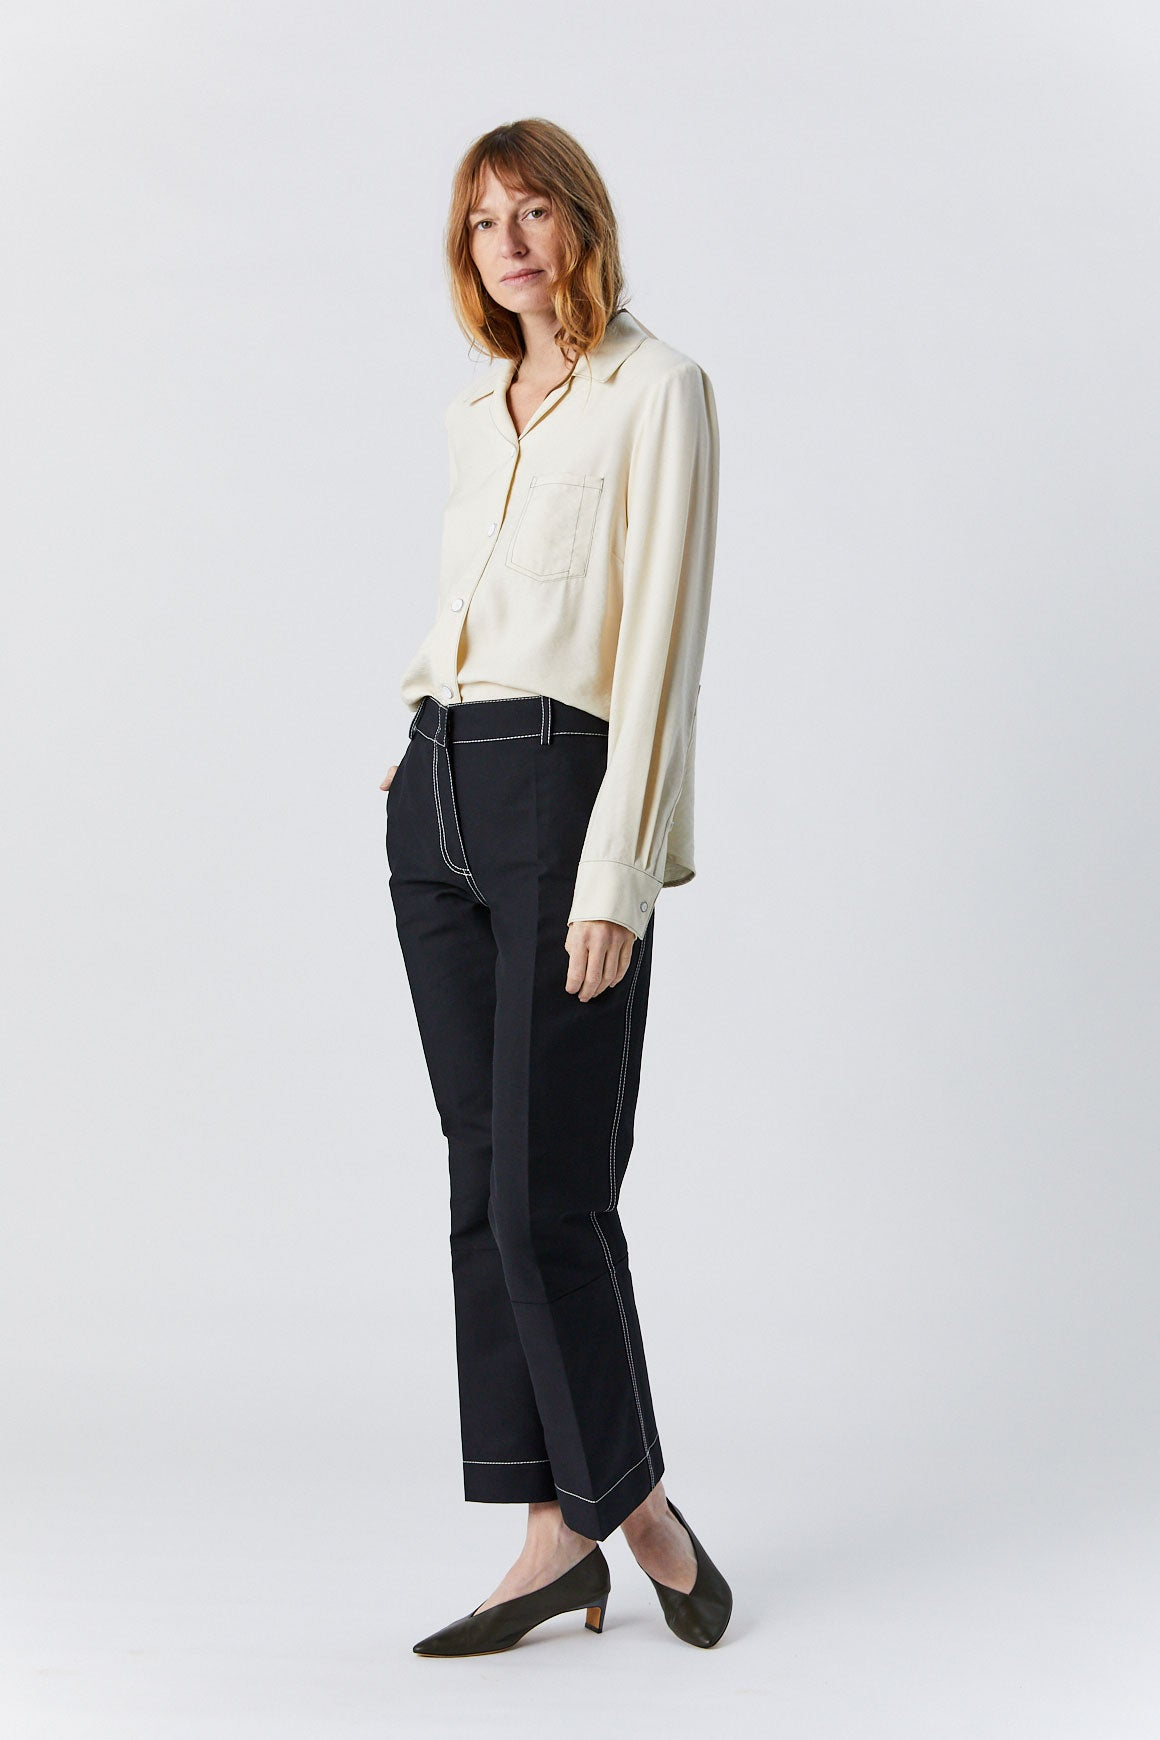 MARNI - Trouser, Black